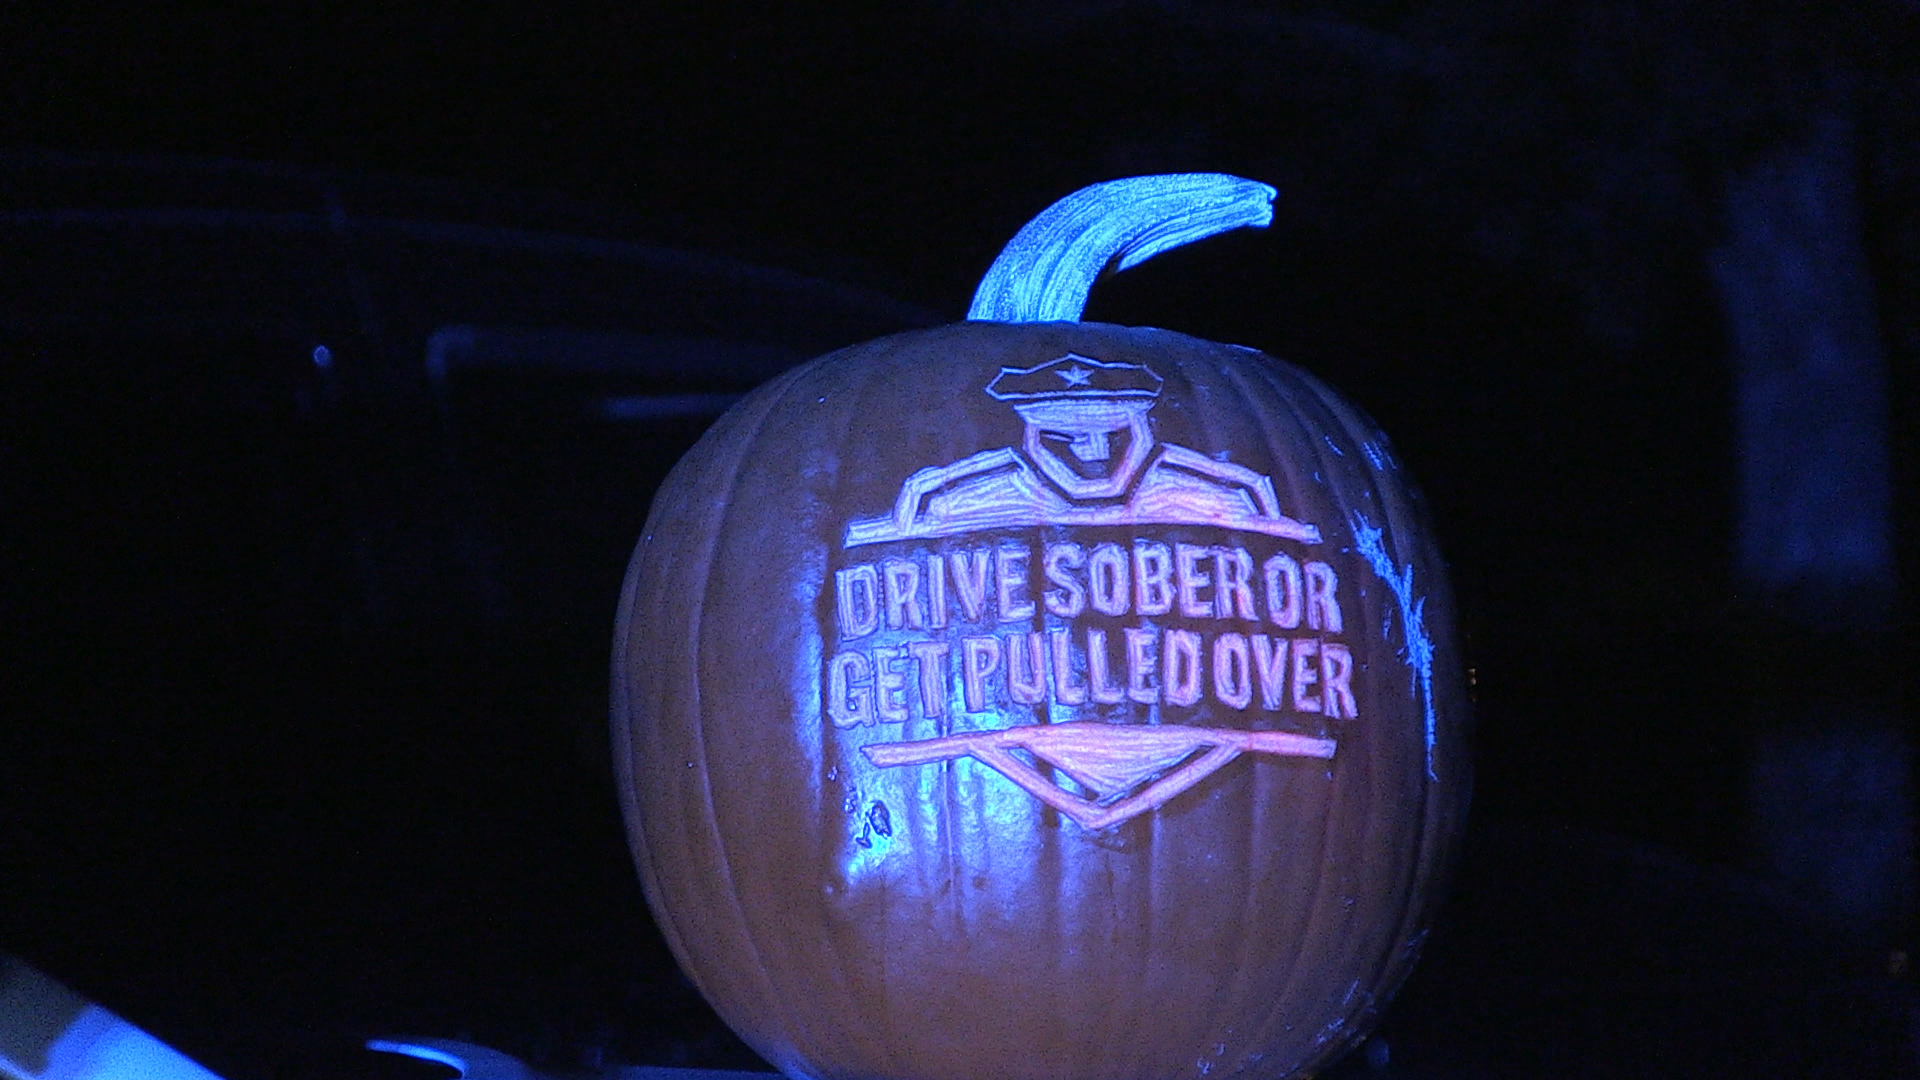 Pumpkin carved with the Drive Sober or Get Pulled Over logo.